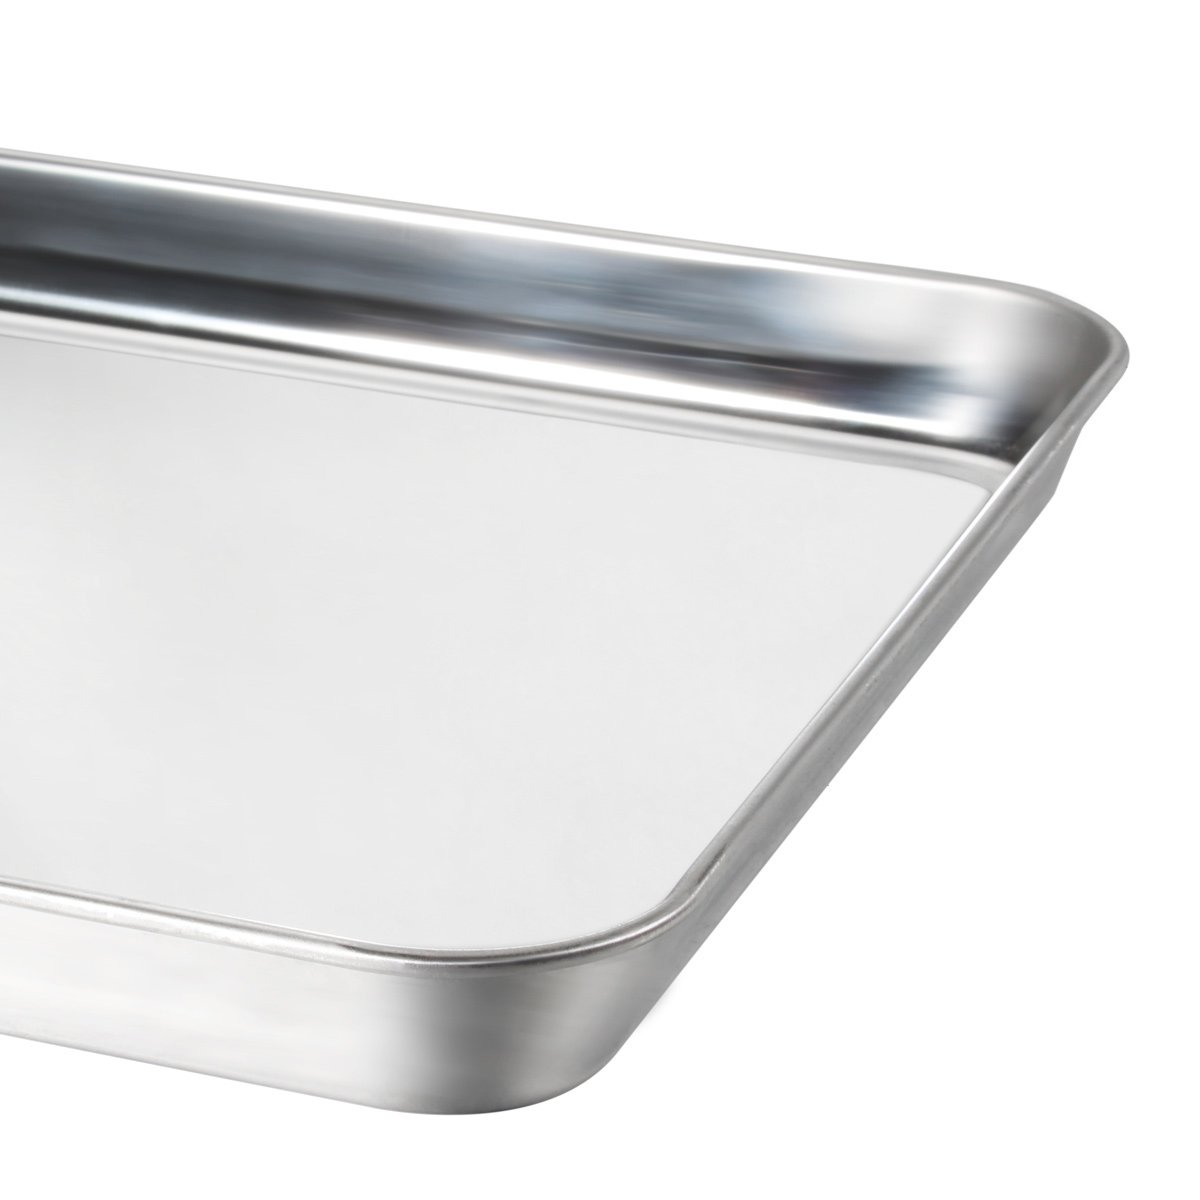 Baking Sheet Pan for Toaster Oven, Umite Chef Stainless Steel Baking Pans Small Metal Mini Cookie Sheets, Non Toxic, Superior Mirror Finish Easy Clean, Dishwasher Safe, 9 x 7 x 1 inch by Umite Chef (Image #2)